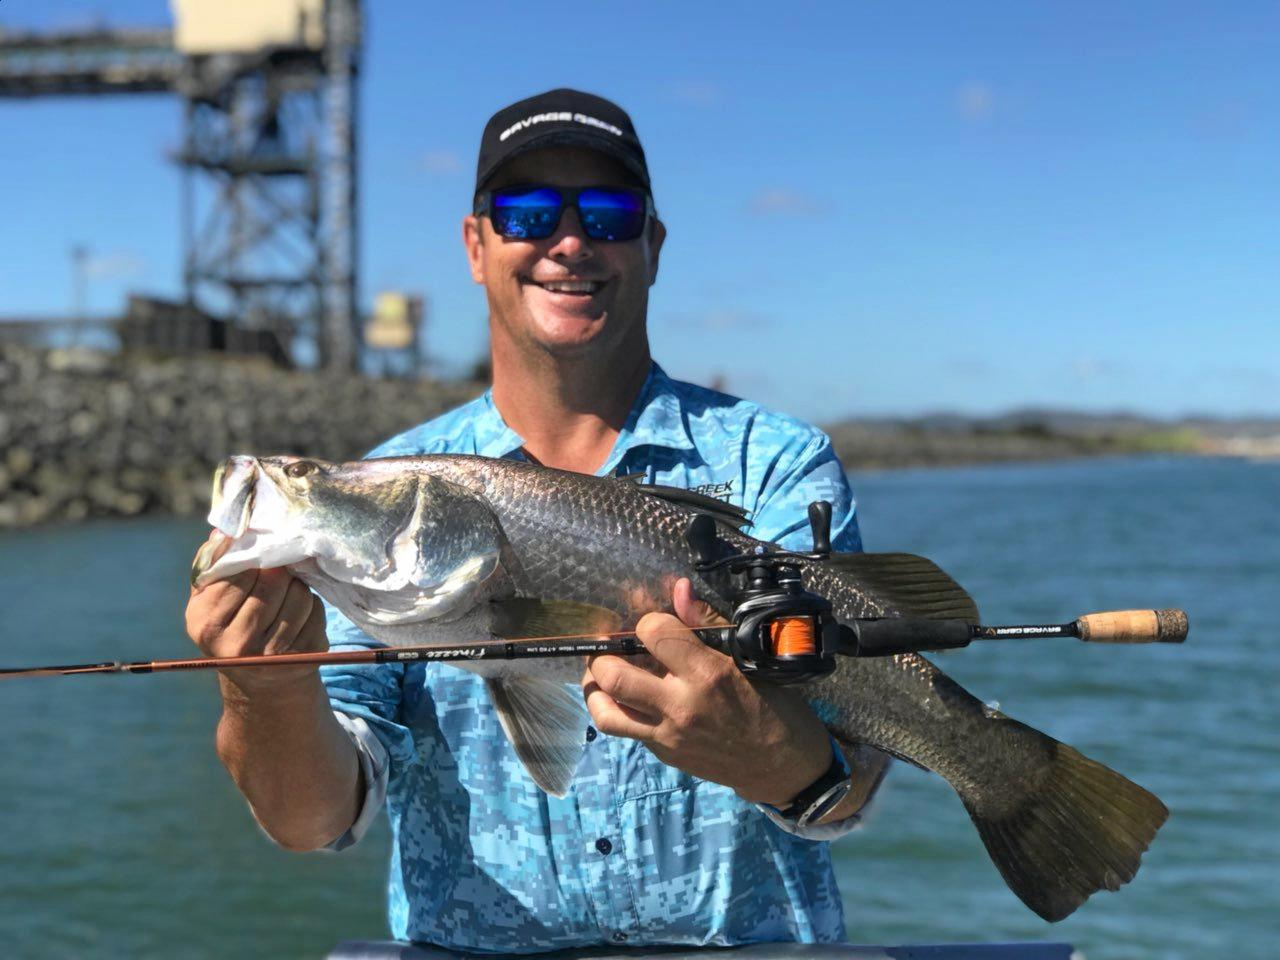 GOOD FISH: Scotty Hiller with a nice barramundi caught in the Harbour,